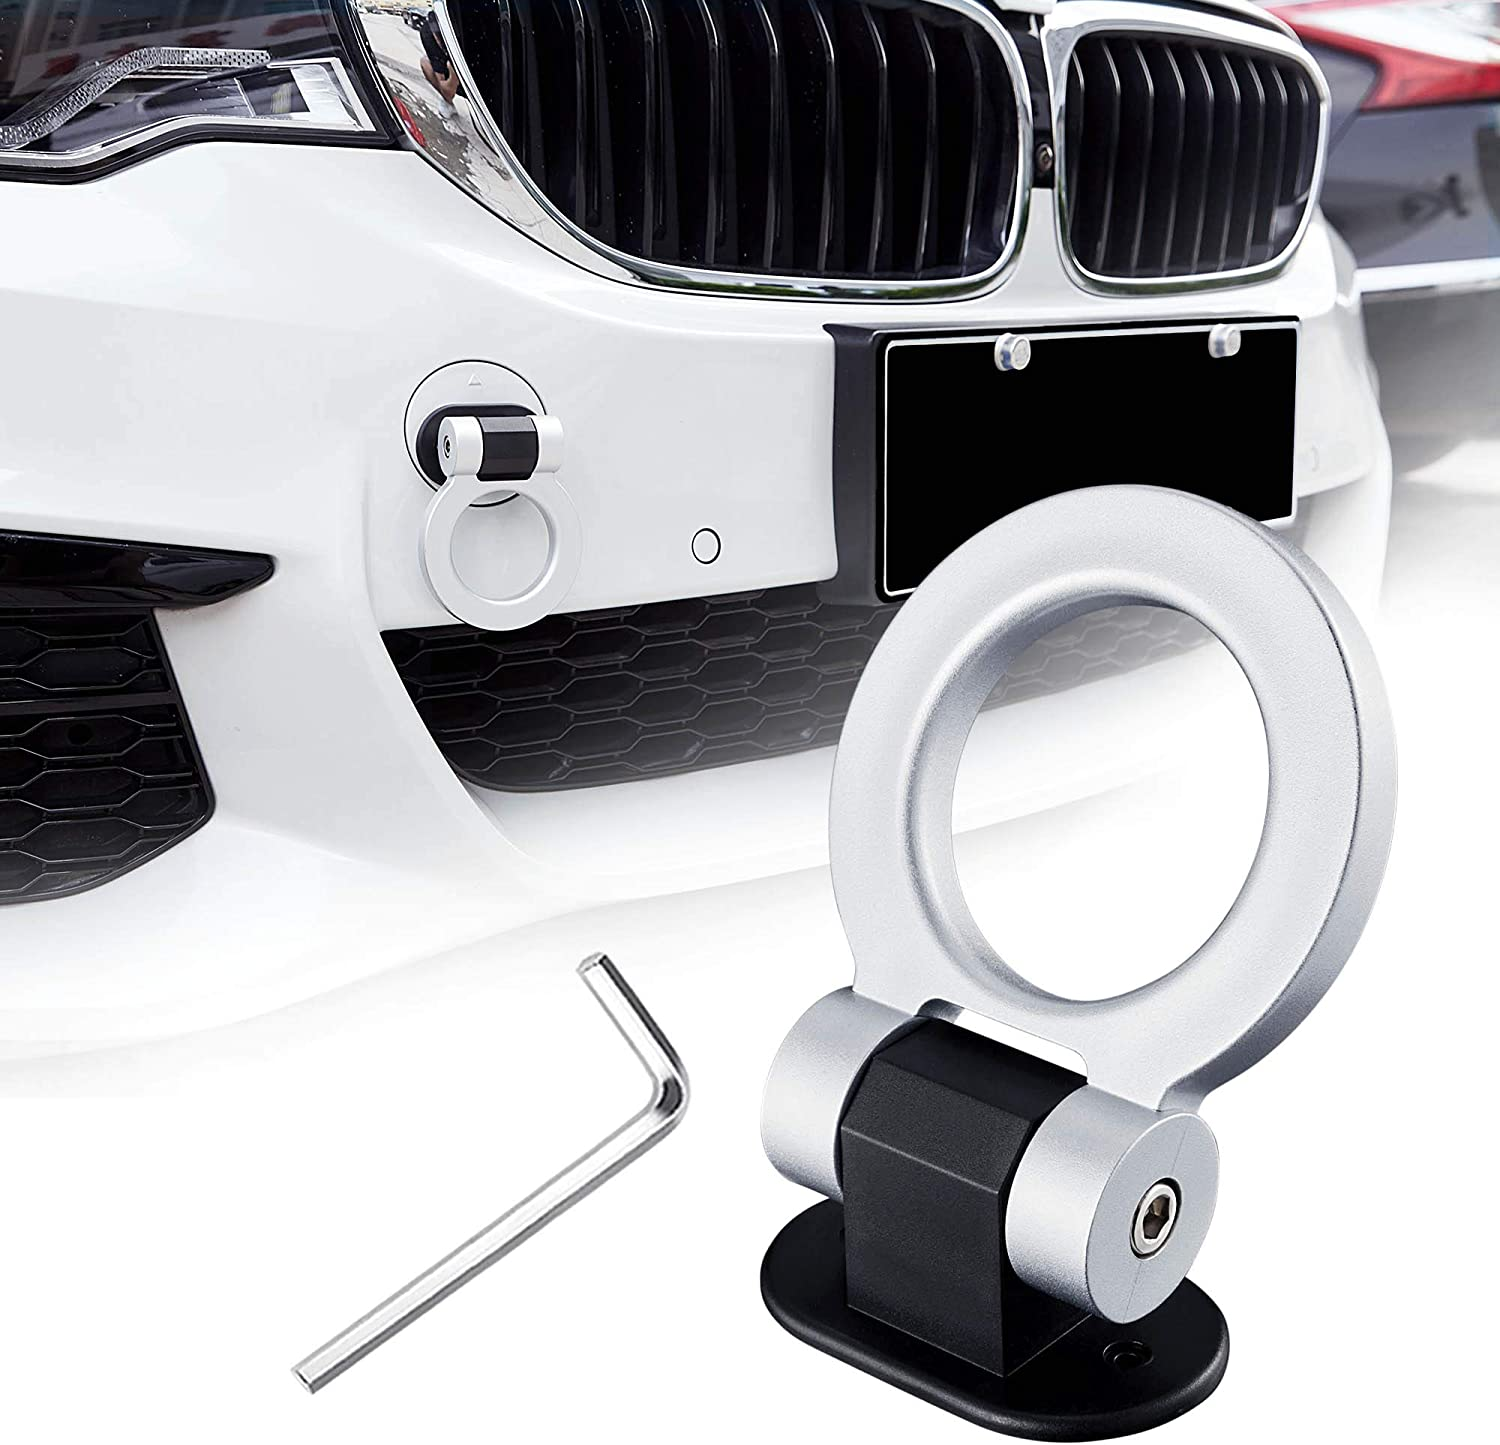 ONLY Decoration TOMALL Tow Hook Kit Silver Car Decorations Sticker Car Decor Bumper for Auto Exterior Accessories